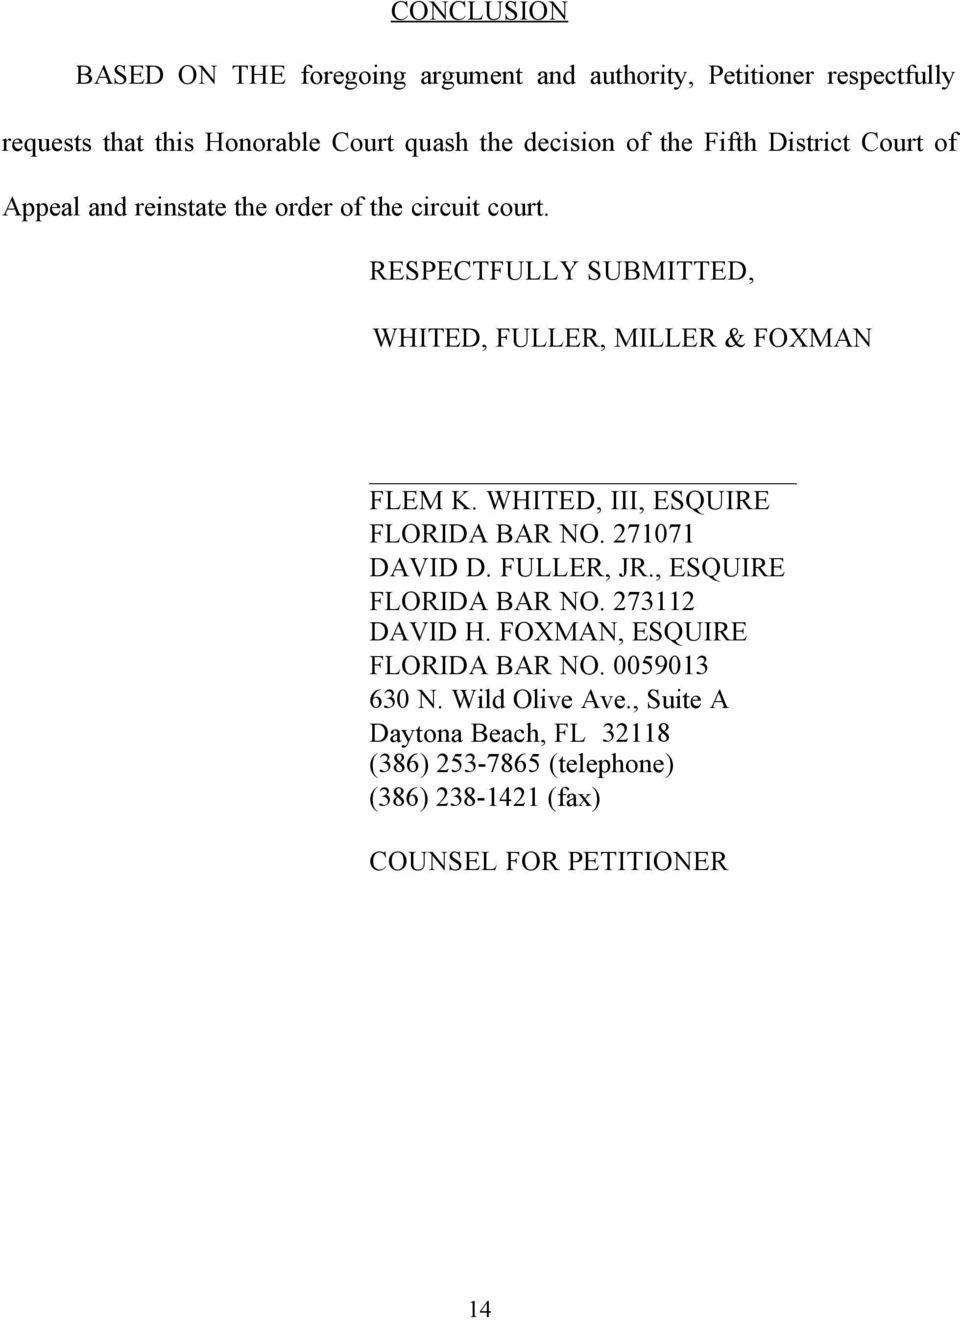 RESPECTFULLY SUBMITTED, WHITED, FULLER, MILLER & FOXMAN FLEM K. WHITED, III, ESQUIRE FLORIDA BAR NO. 271071 DAVID D. FULLER, JR.